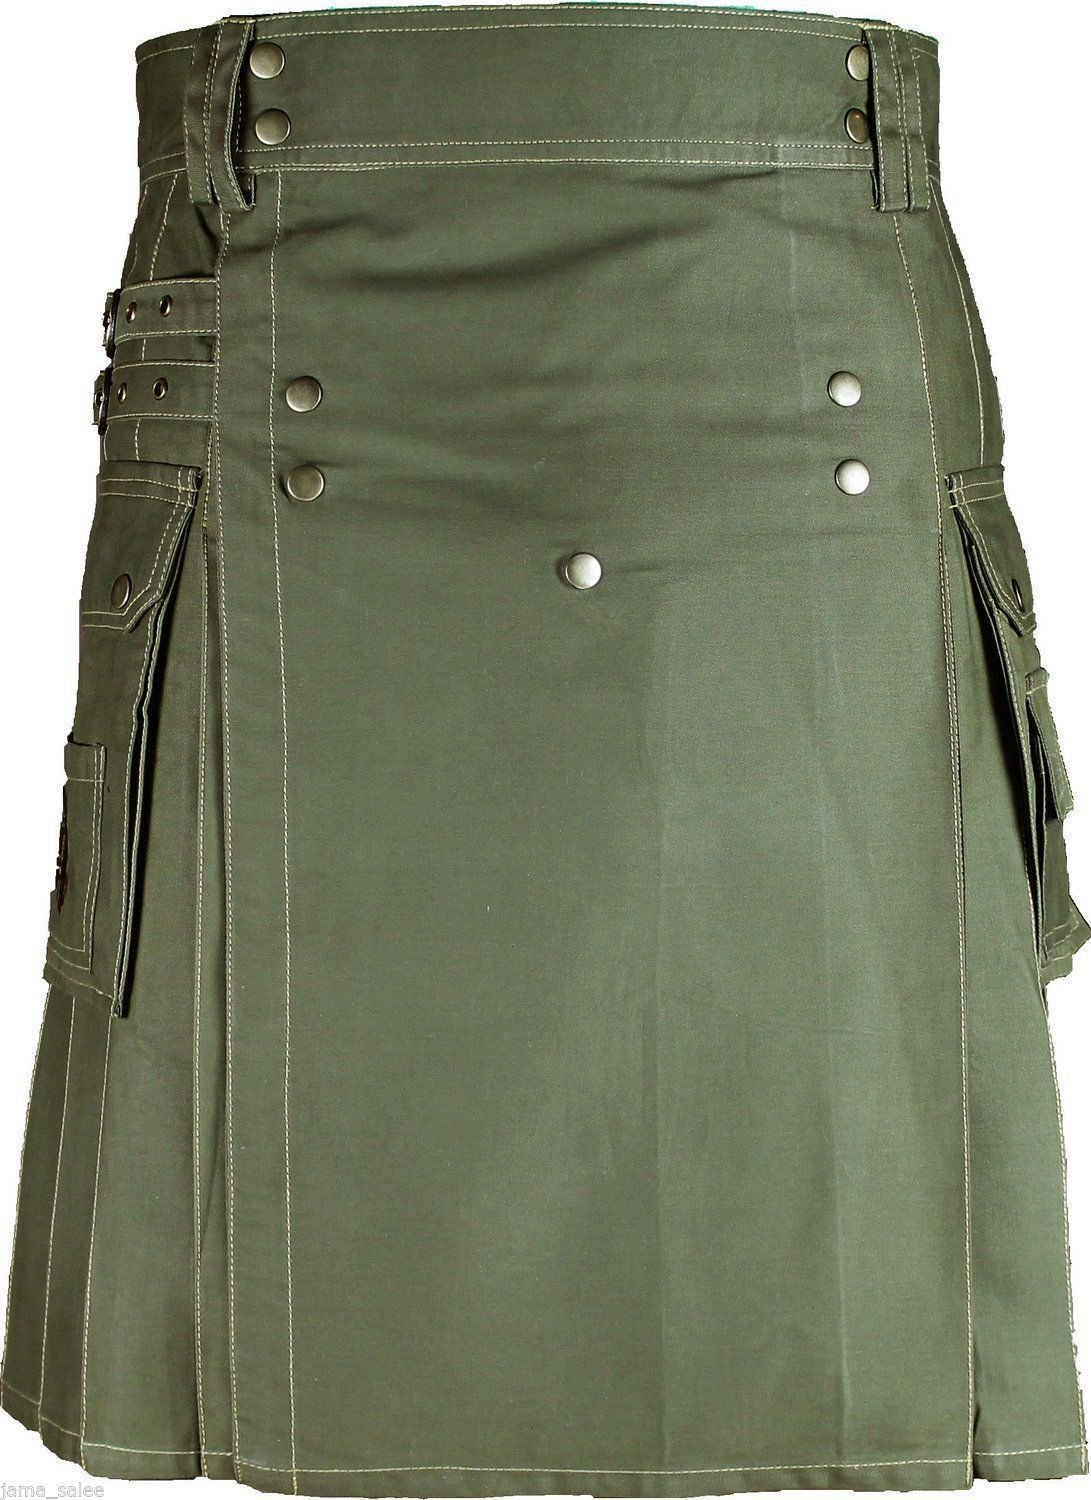 New 50 Size Modern Olive Green Kilt Traditional Scottish Utility Cotton Kilt